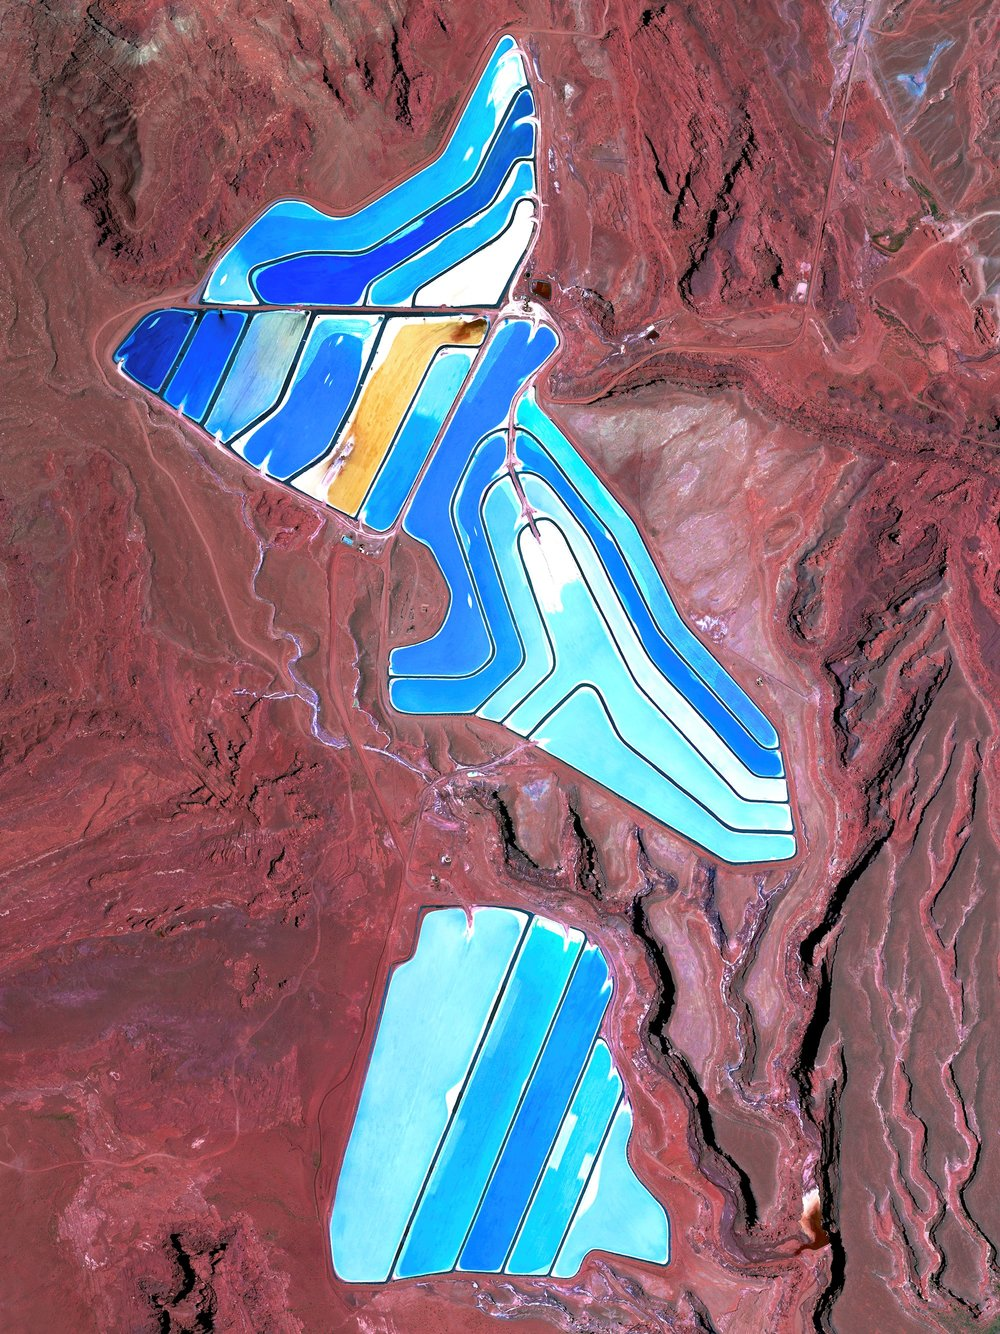 "Evaporation ponds are visible at the Intrepid Potash Mine in Moab, Utah, USA. The mine produces muriate of potash, a potassium-containing salt that is a major component in fertilizers. The salt is pumped to the surface from underground brines and dried in massive solar ponds that vibrantly extend across the landscape. As the water evaporates over the course of 300 days, the salts crystallize out. The blue color seen here occurs because the water is dyed a deep blue to absorb more sunlight and heat, thereby reducing the amount of time it takes for the water to evaporate and the potash to crystallize.  38°29'08.1""N, 109°41'04.6""W  Source imagery: DigitalGlobe"